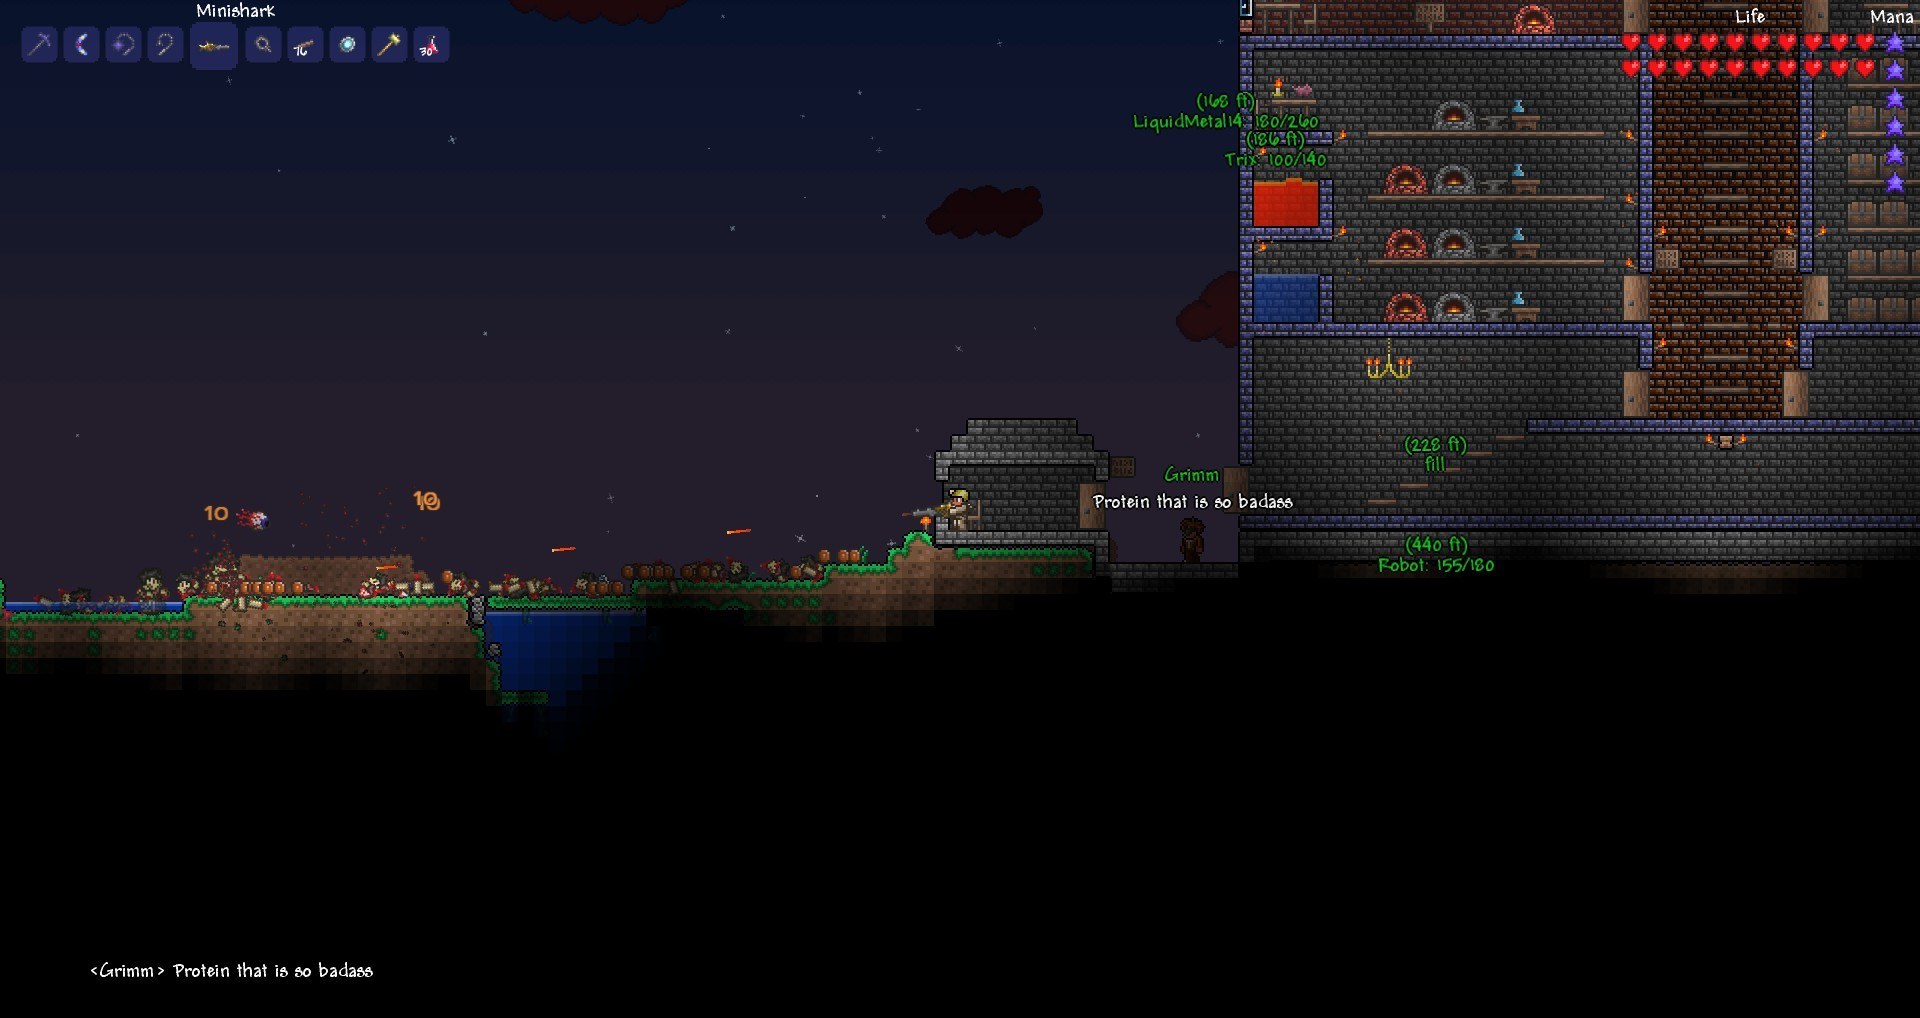 Starbound Announced New Game From Terraria Artist Studio Wiring Creations Click To Expand